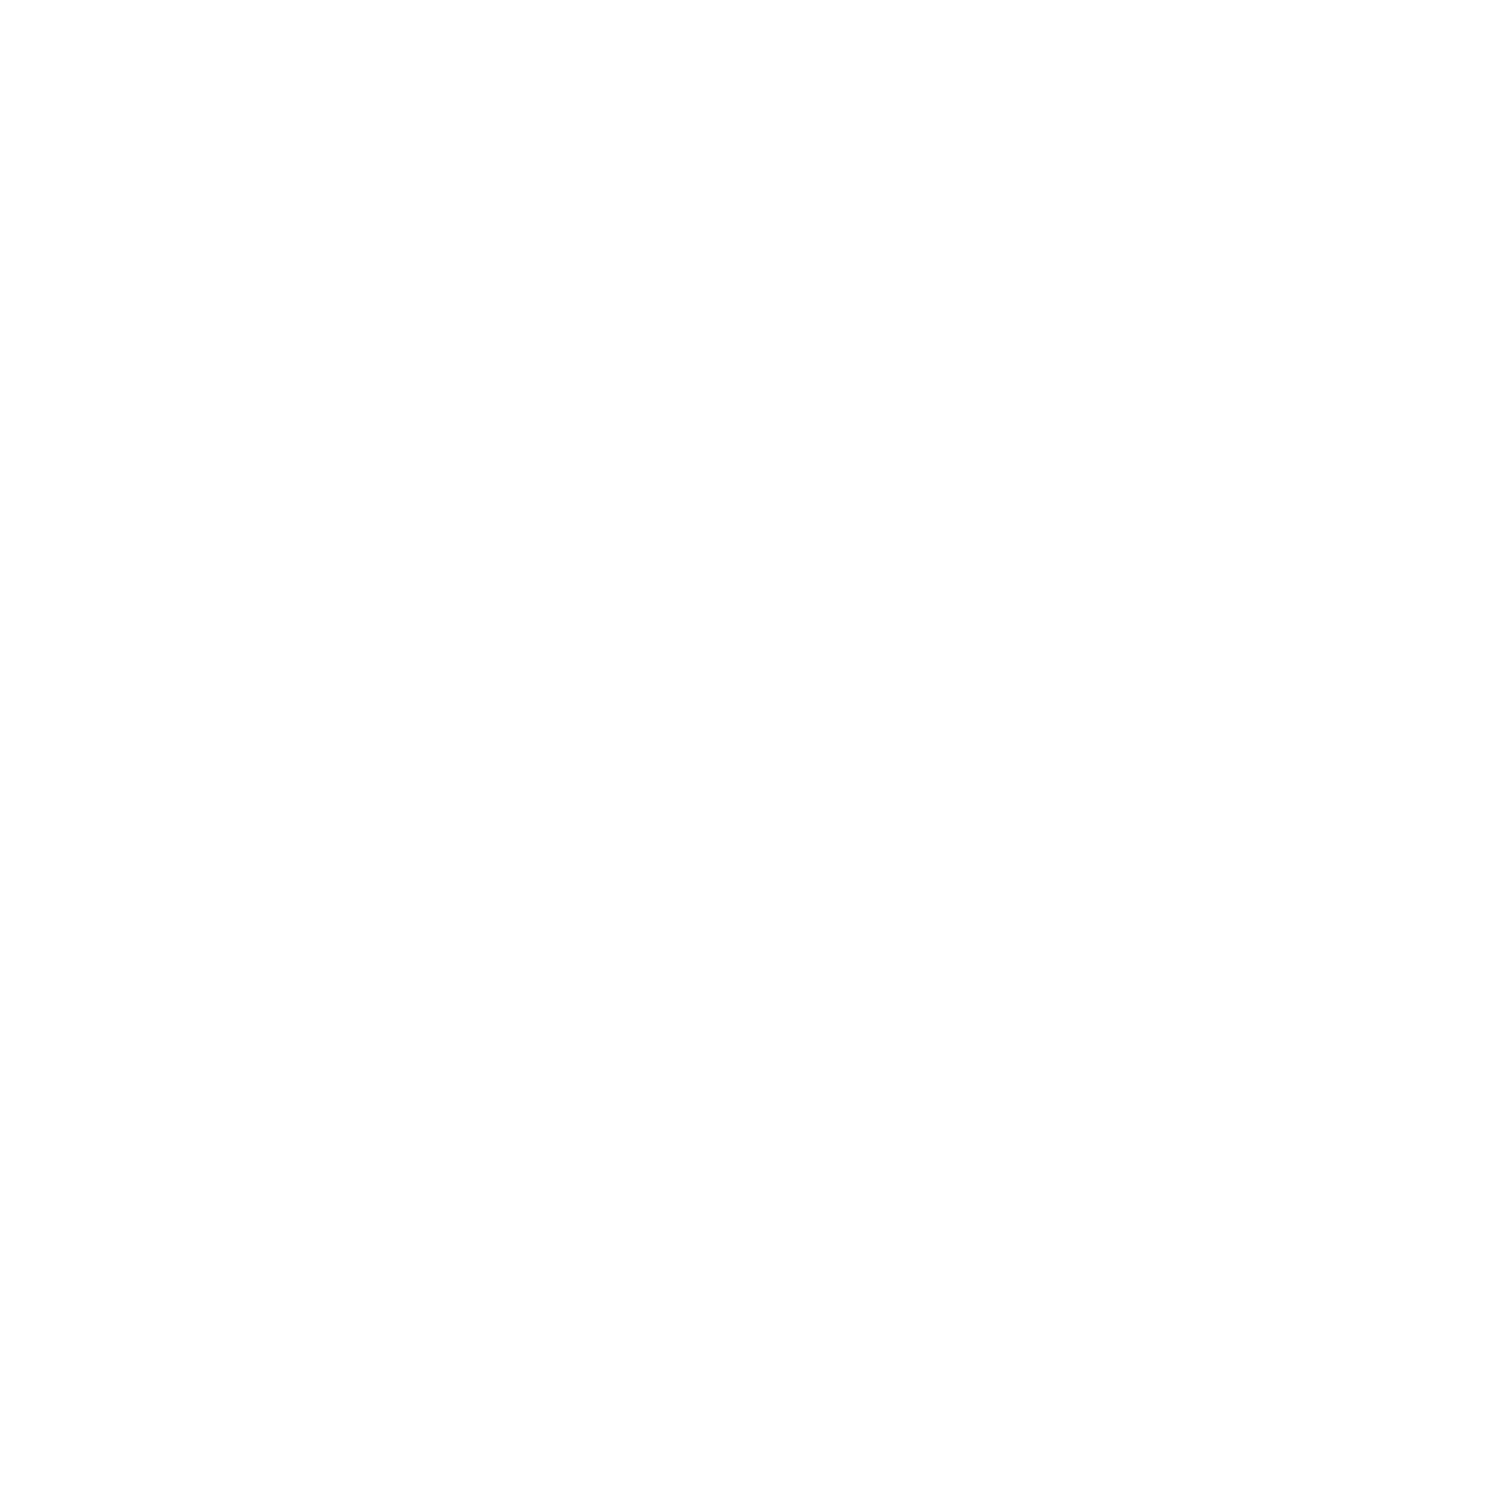 LYFE Athletics / Team CrossFit